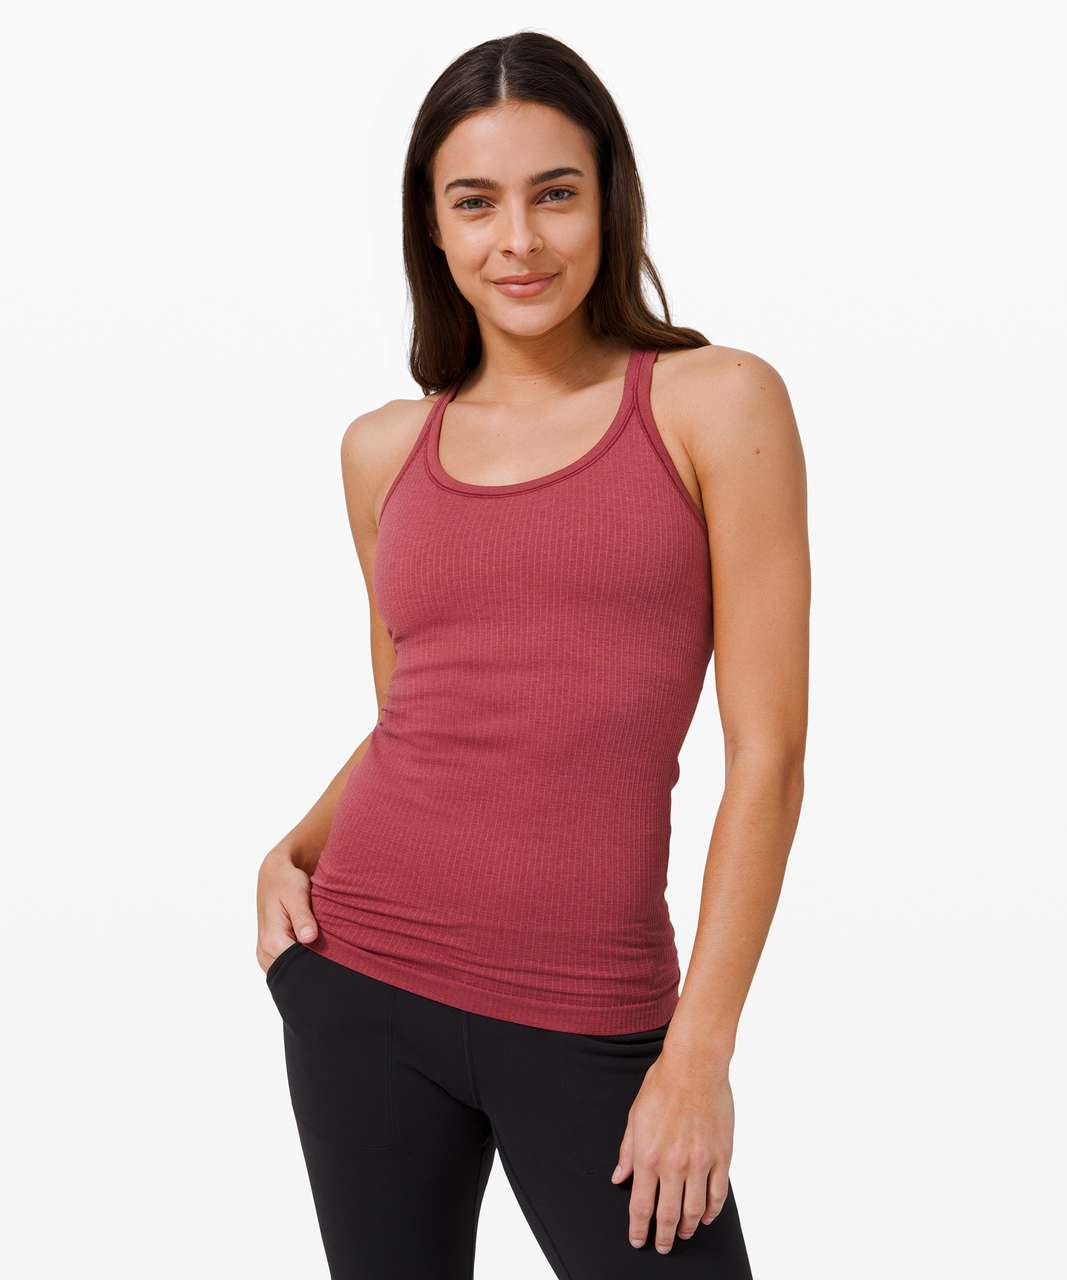 Lululemon Ebb To Street Tank *Light Support For B/C Cup - Chianti